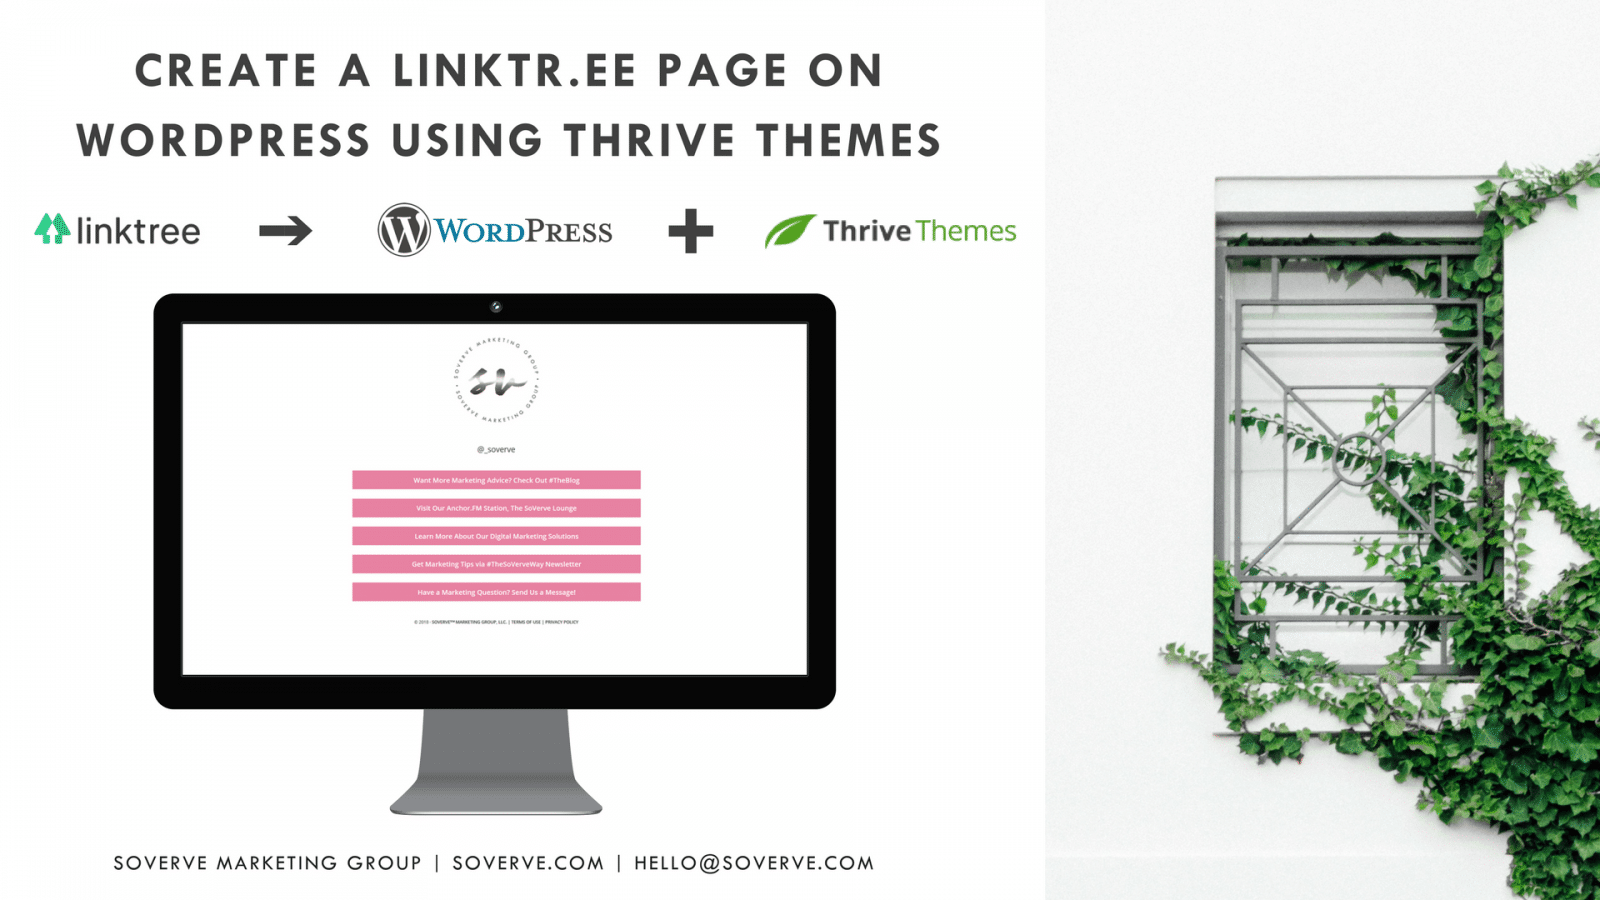 Self-Hosted Marketing, Create a Linktr.ee Page on WordPress Using Thrive Themes, SoVerve Marketing Group, Digital Marketing, Social Media Marketing, Linktr.ee Tutorial